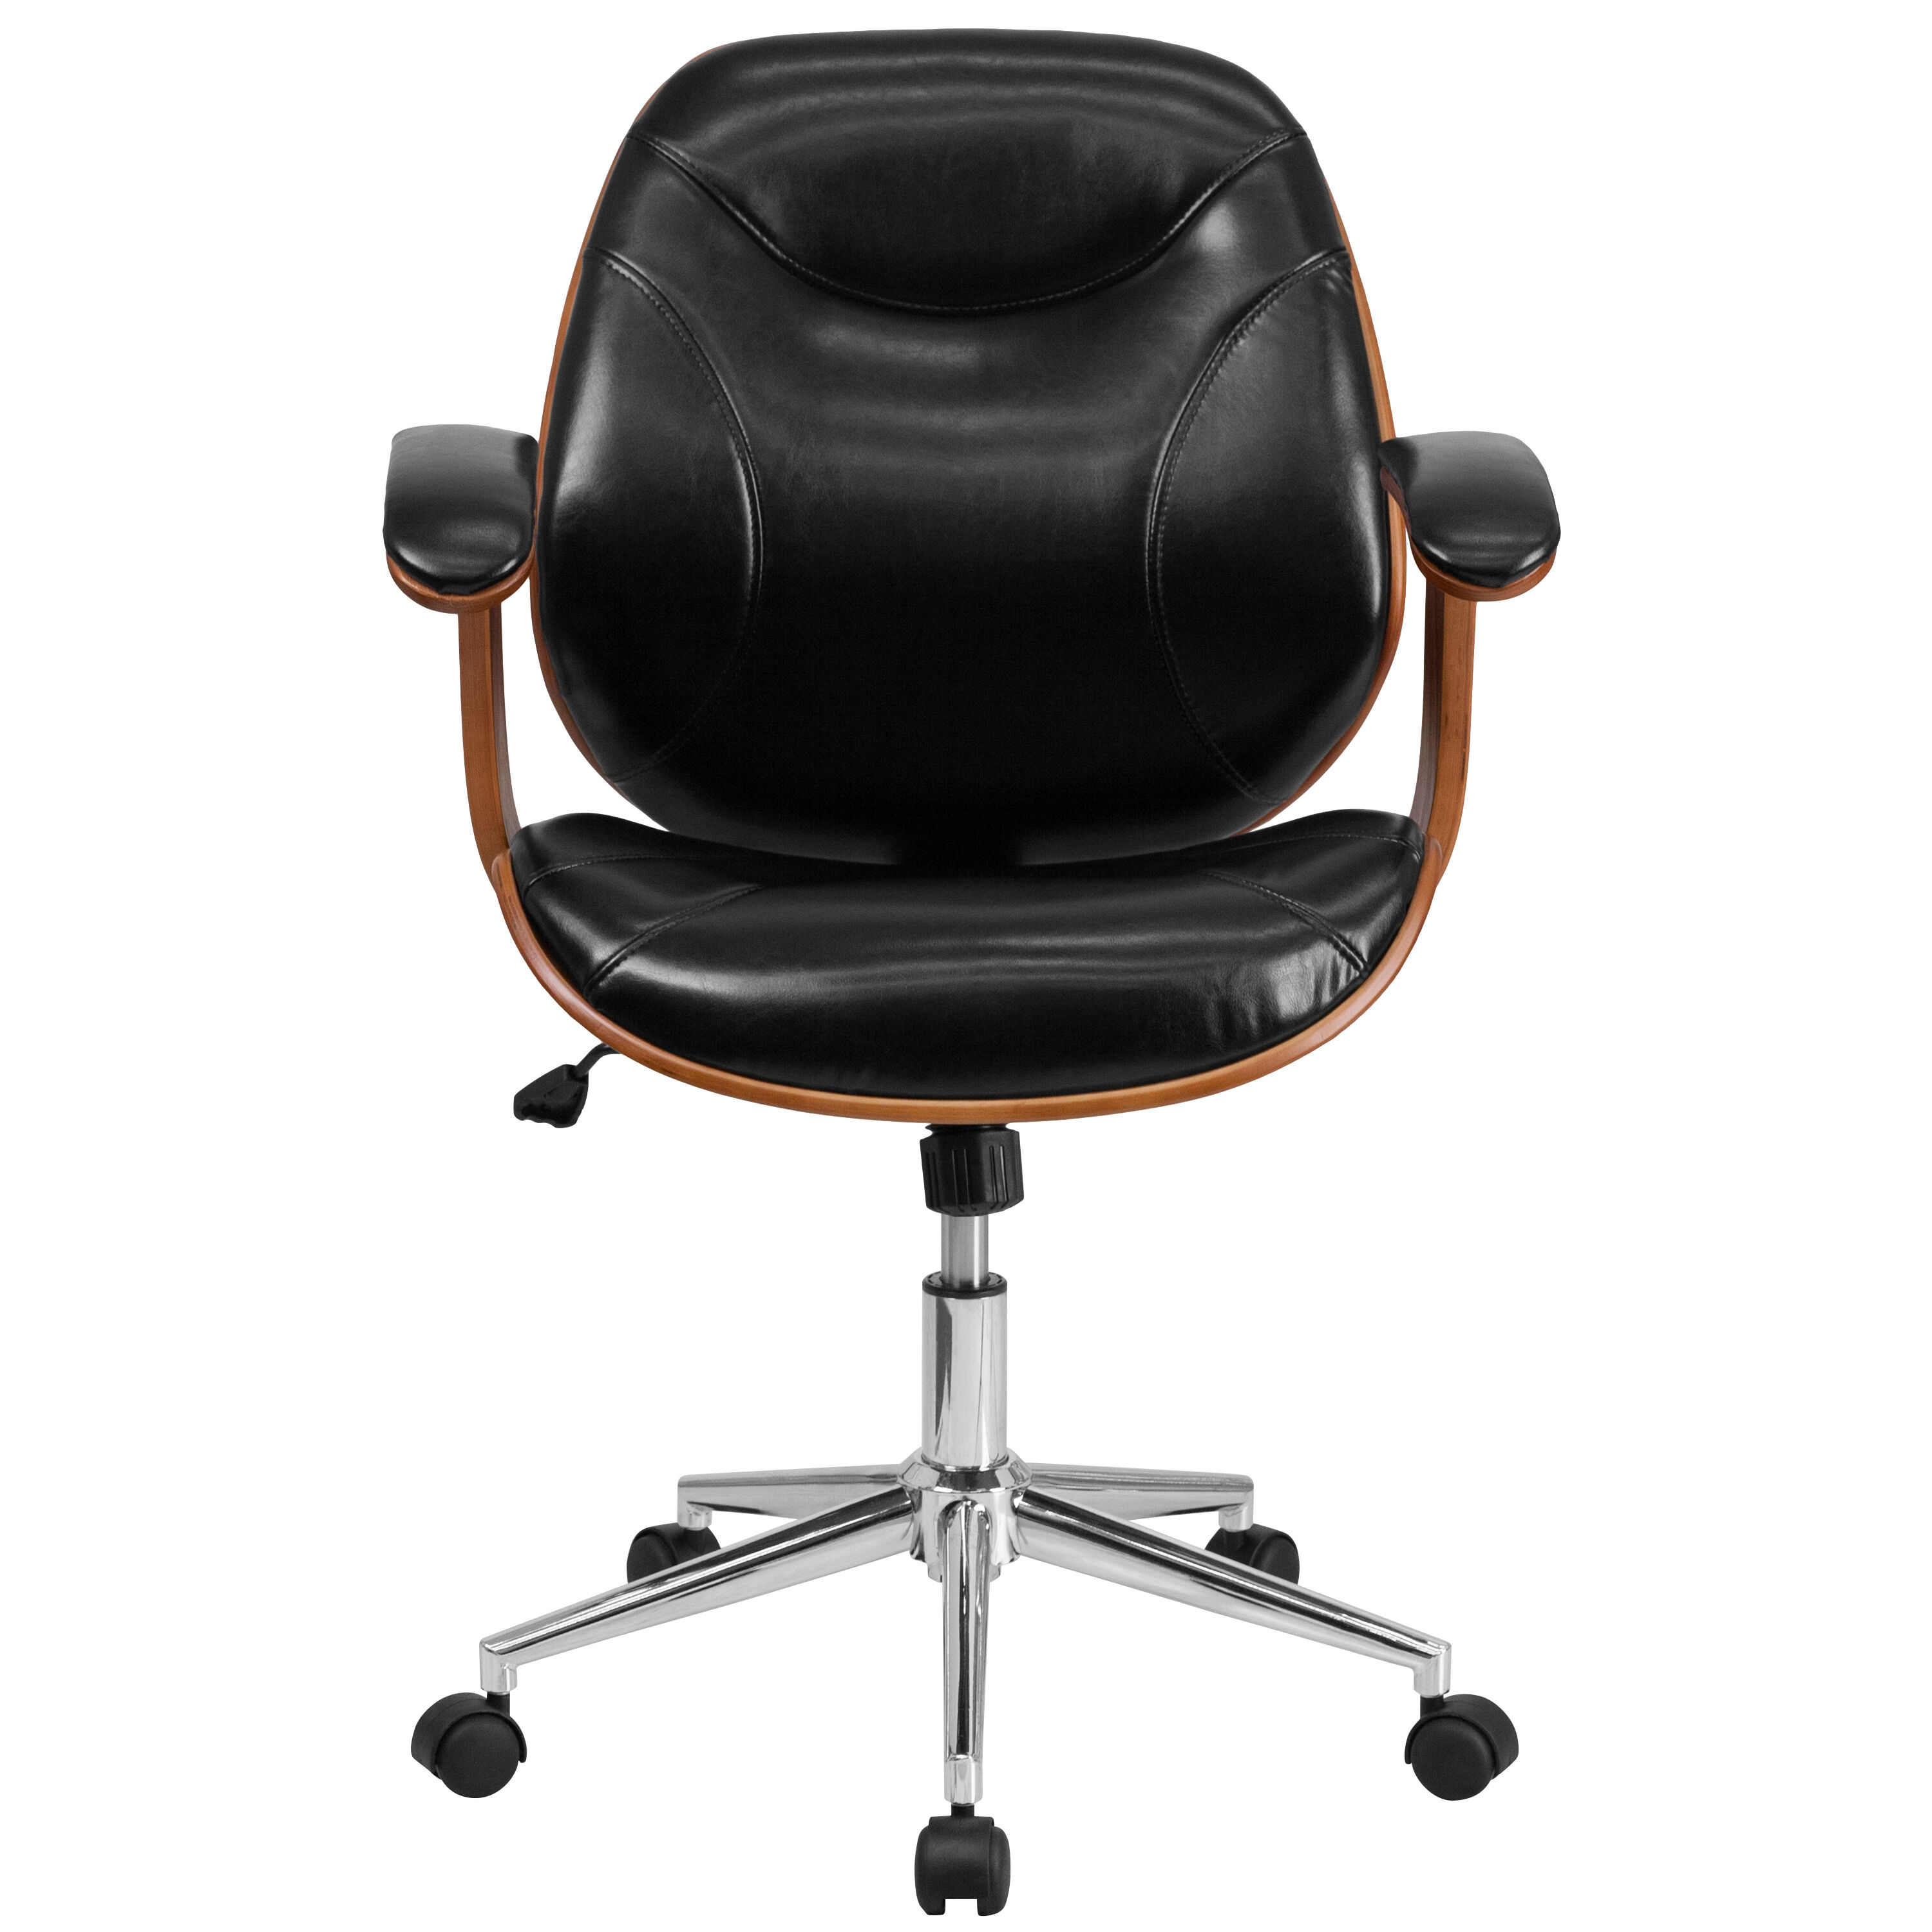 wood and leather executive office chairs peacock color chair black mid back sd sdm 2235 5 bk gg bizchair com our ergonomic swivel with arms is on